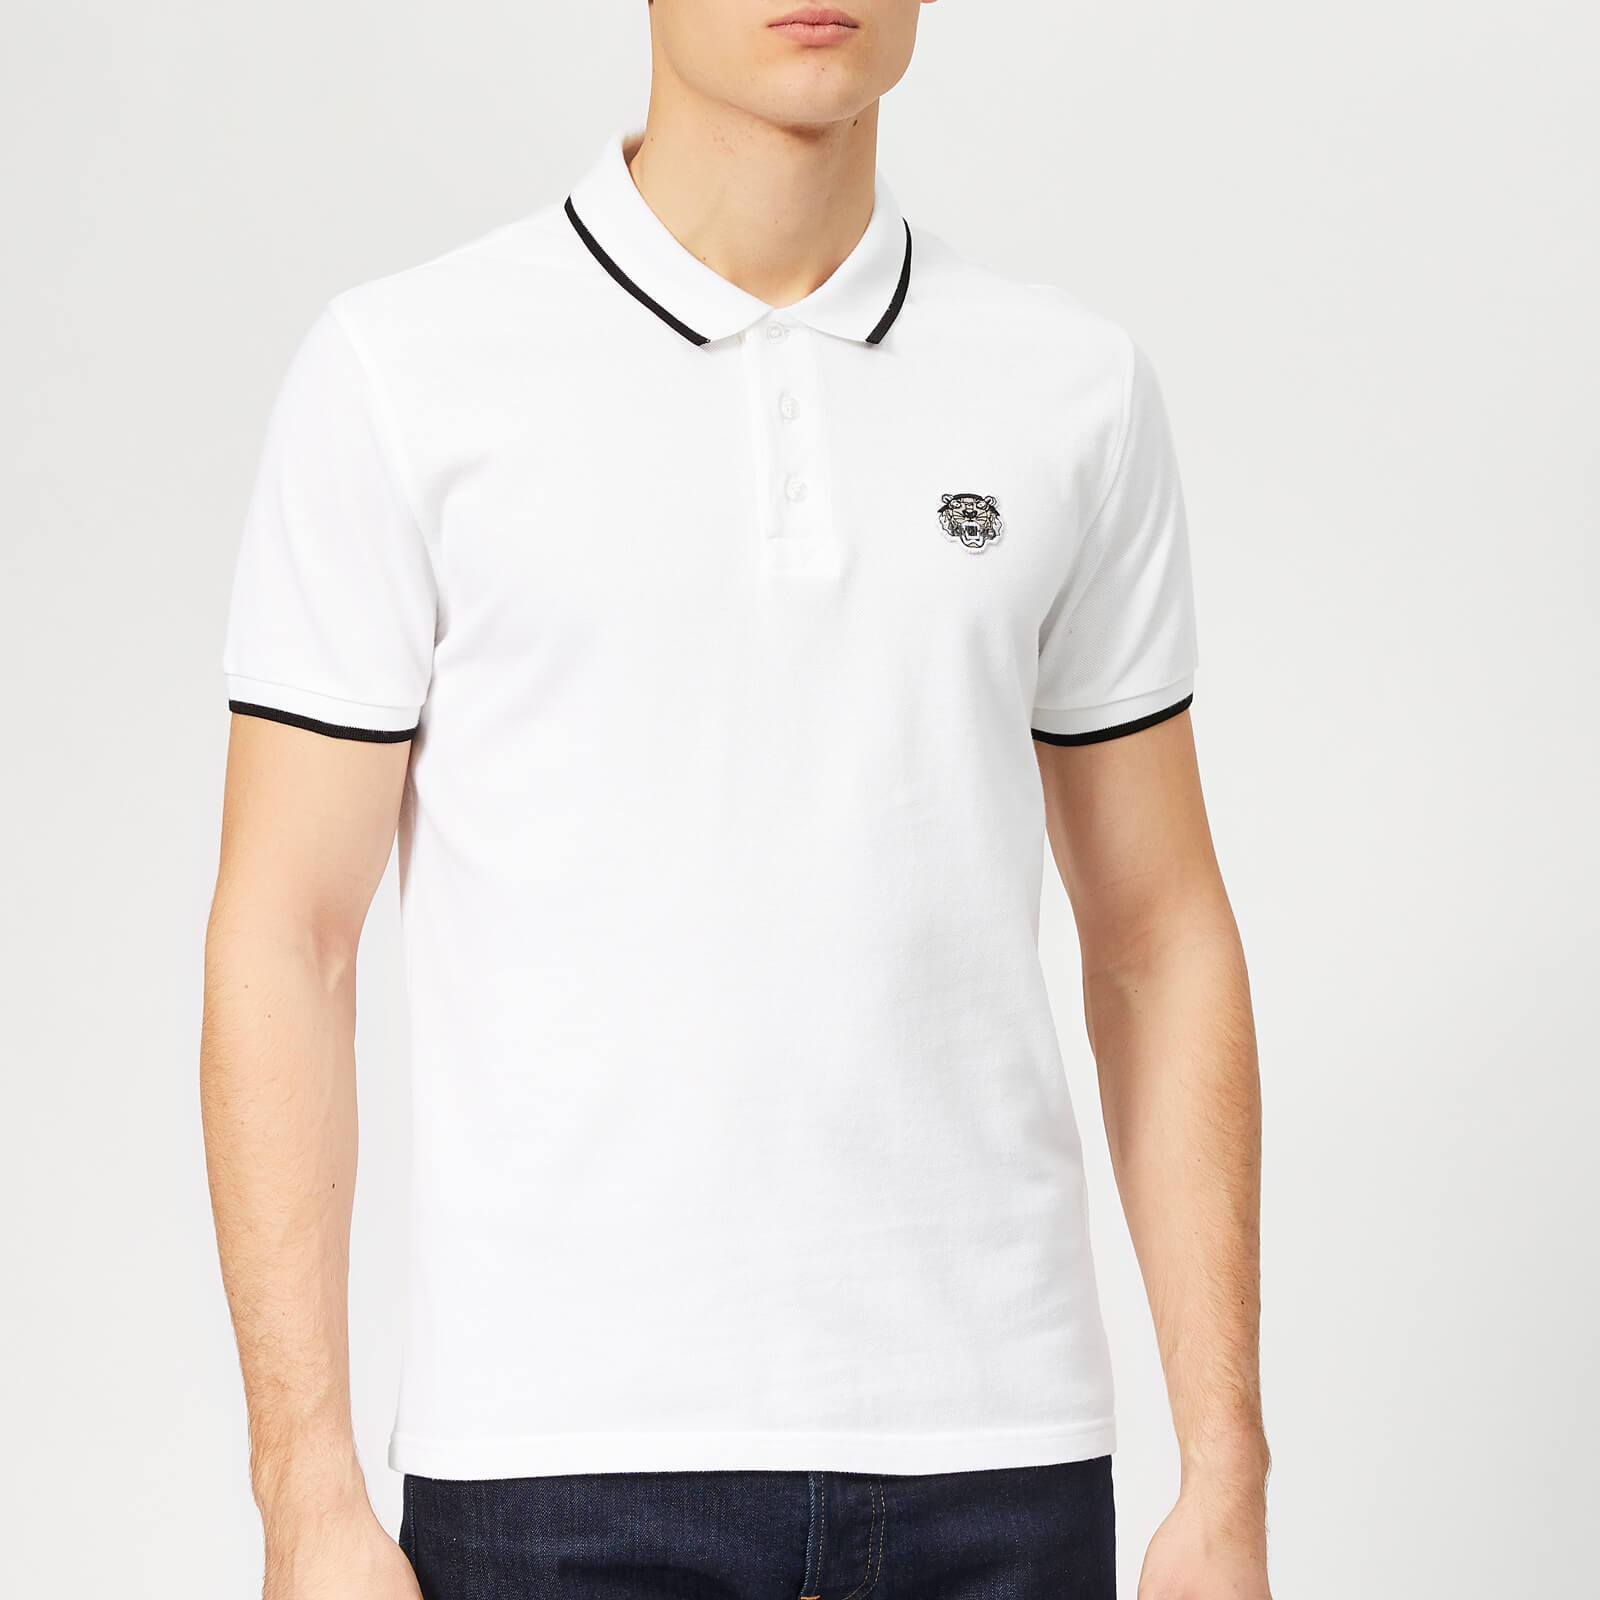 KENZO Men s Tipped Polo Shirt - White - Free UK Delivery over £50 61b558e0b95b